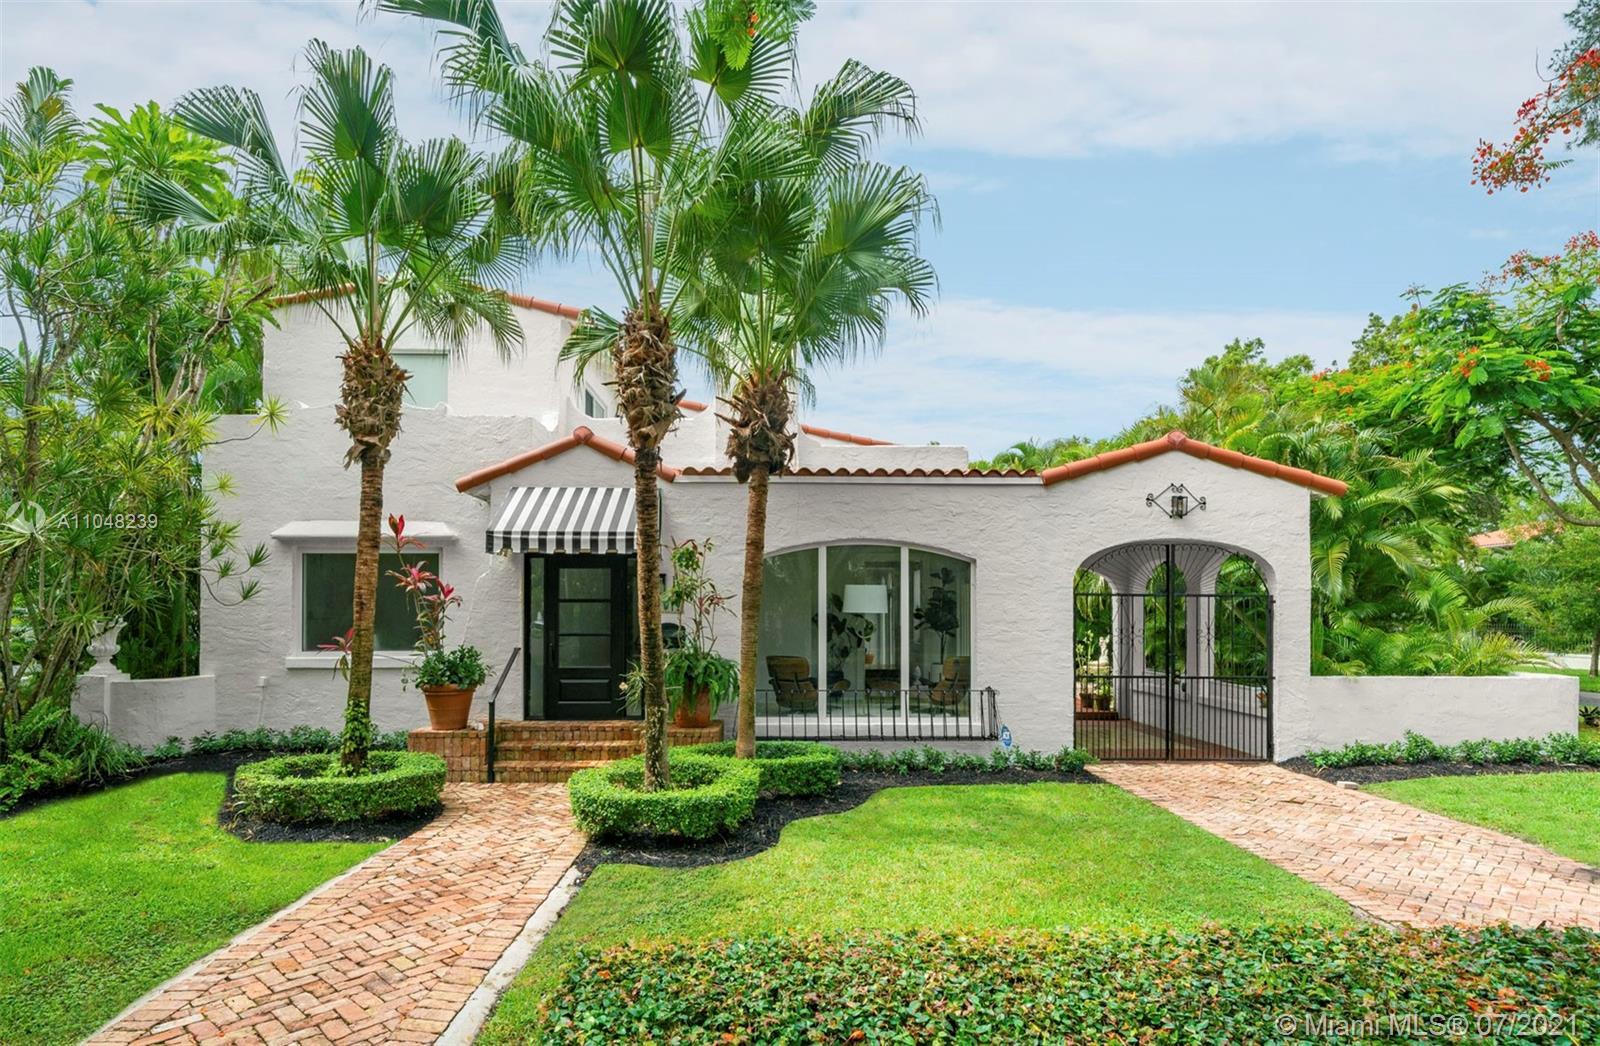 This 3,433 Sq. Ft. Spanish Colonial 4-bedroom 2-bath home in Coral Gables is in a peaceful location close to schools, parks, the Granada Golf Course, and world-class shopping and dining. Offering beautiful and light-filled indoor spaces, the home includes a living room with a wood-burning fireplace, upgraded kitchen, dining room and family room. The captivating second-floor main suite has a modern en-suite bathroom with dual sinks and a frameless glass shower. Other highlights include high-impact windows and doors, hand-cut Italian tile and newly refinished wood floors. Outdoors you will find a lagoon-style pool, patio, and the guest house, which has 2 bedrooms, 1 bathroom, living room, kitchenette, and a separate entrance from Cordova Street.